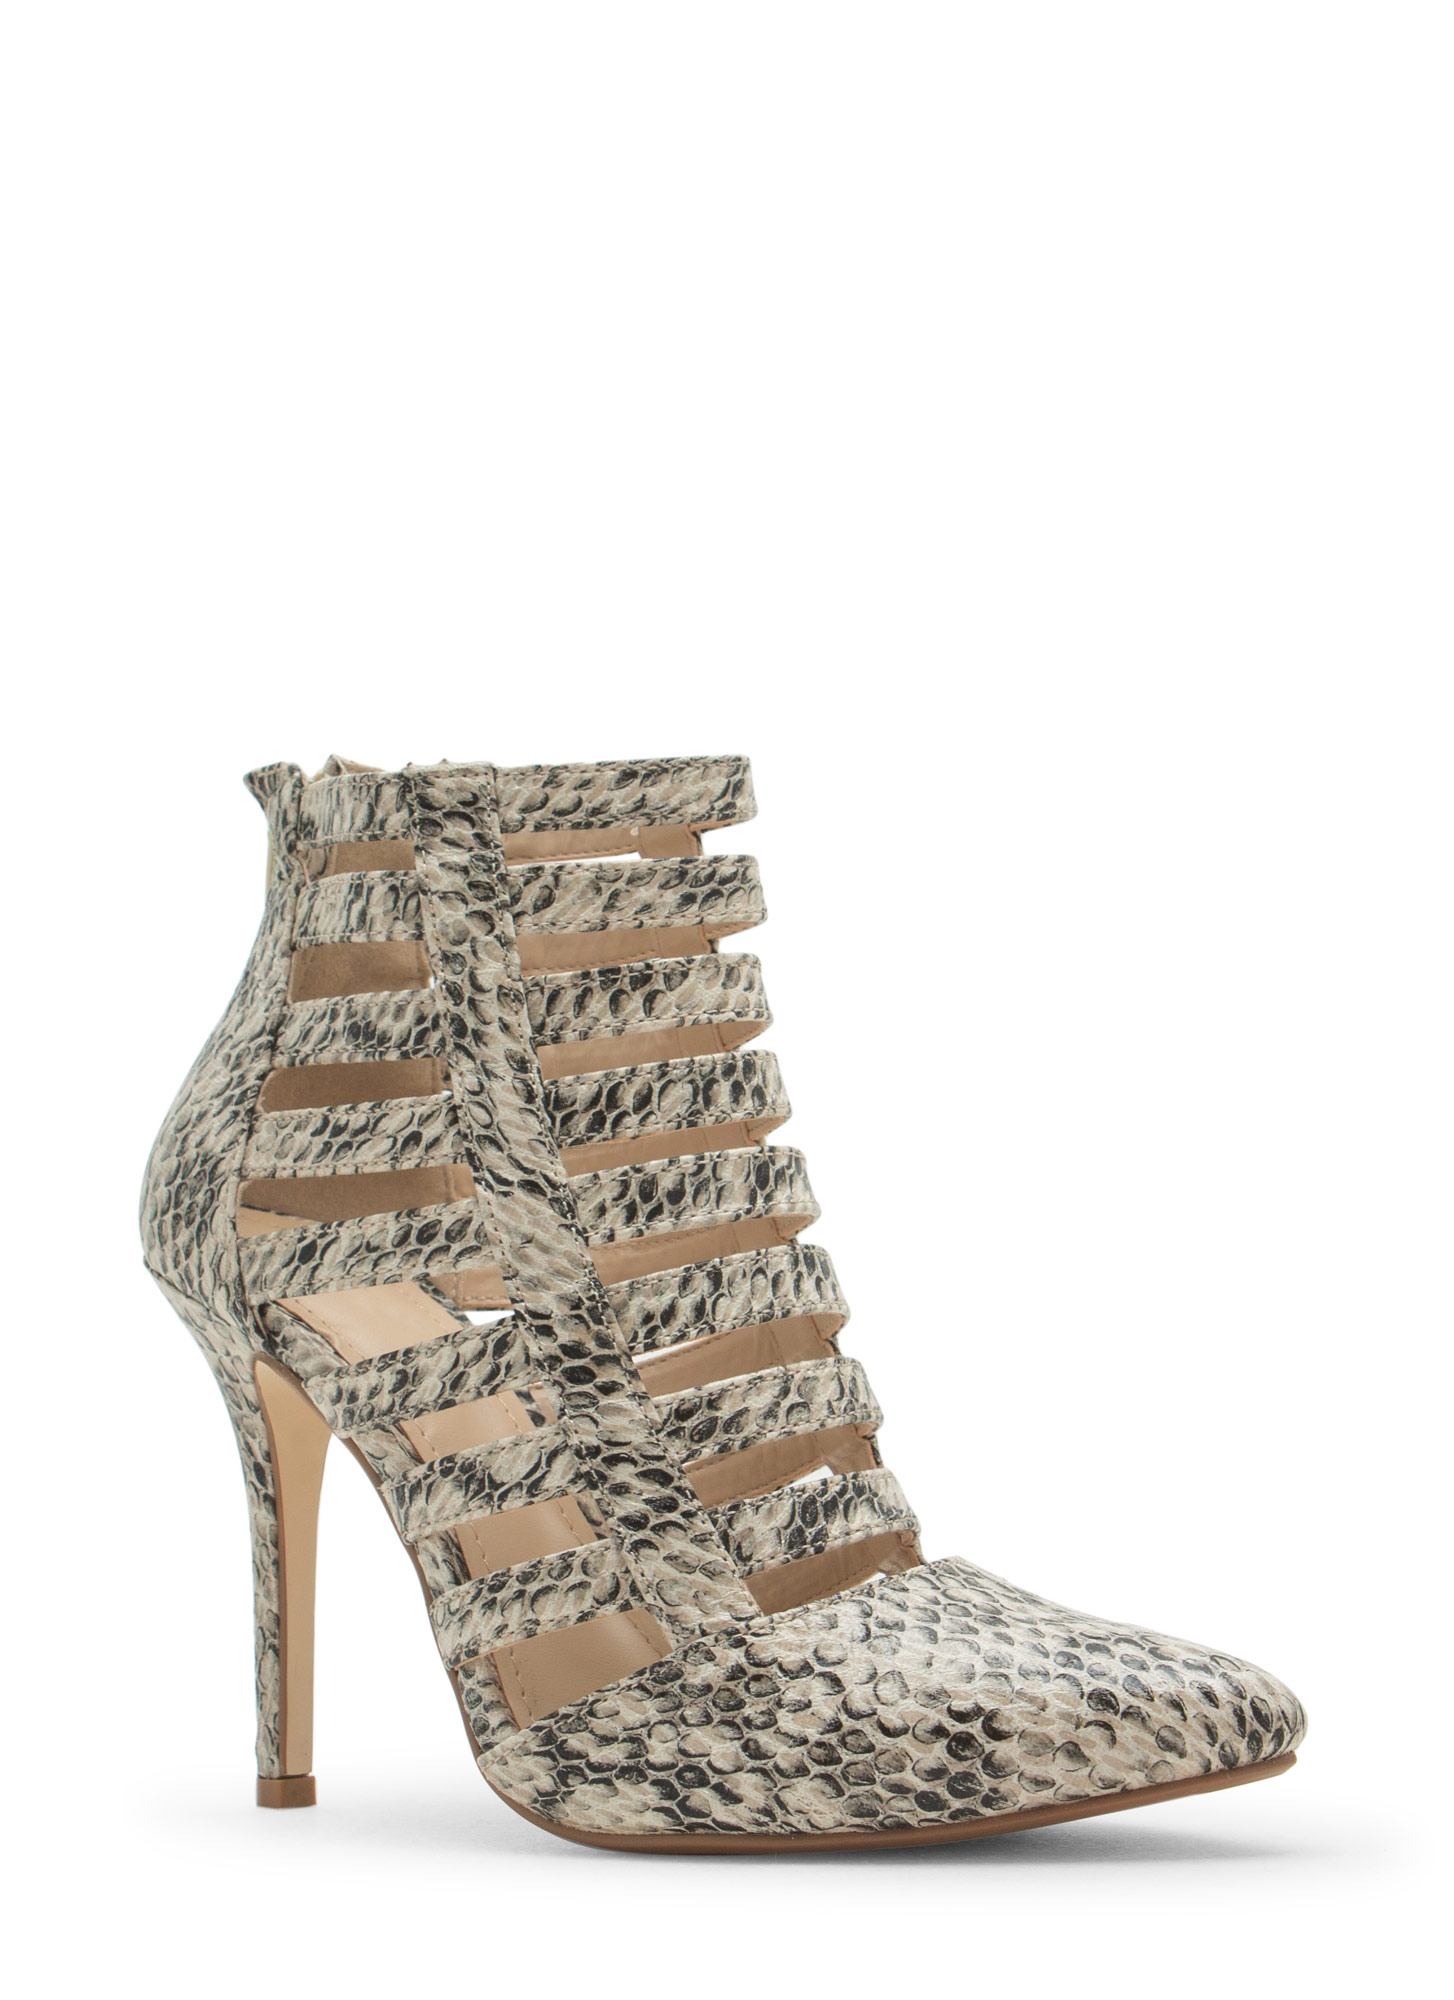 Laddered Cage Pointy Heels NATURAL